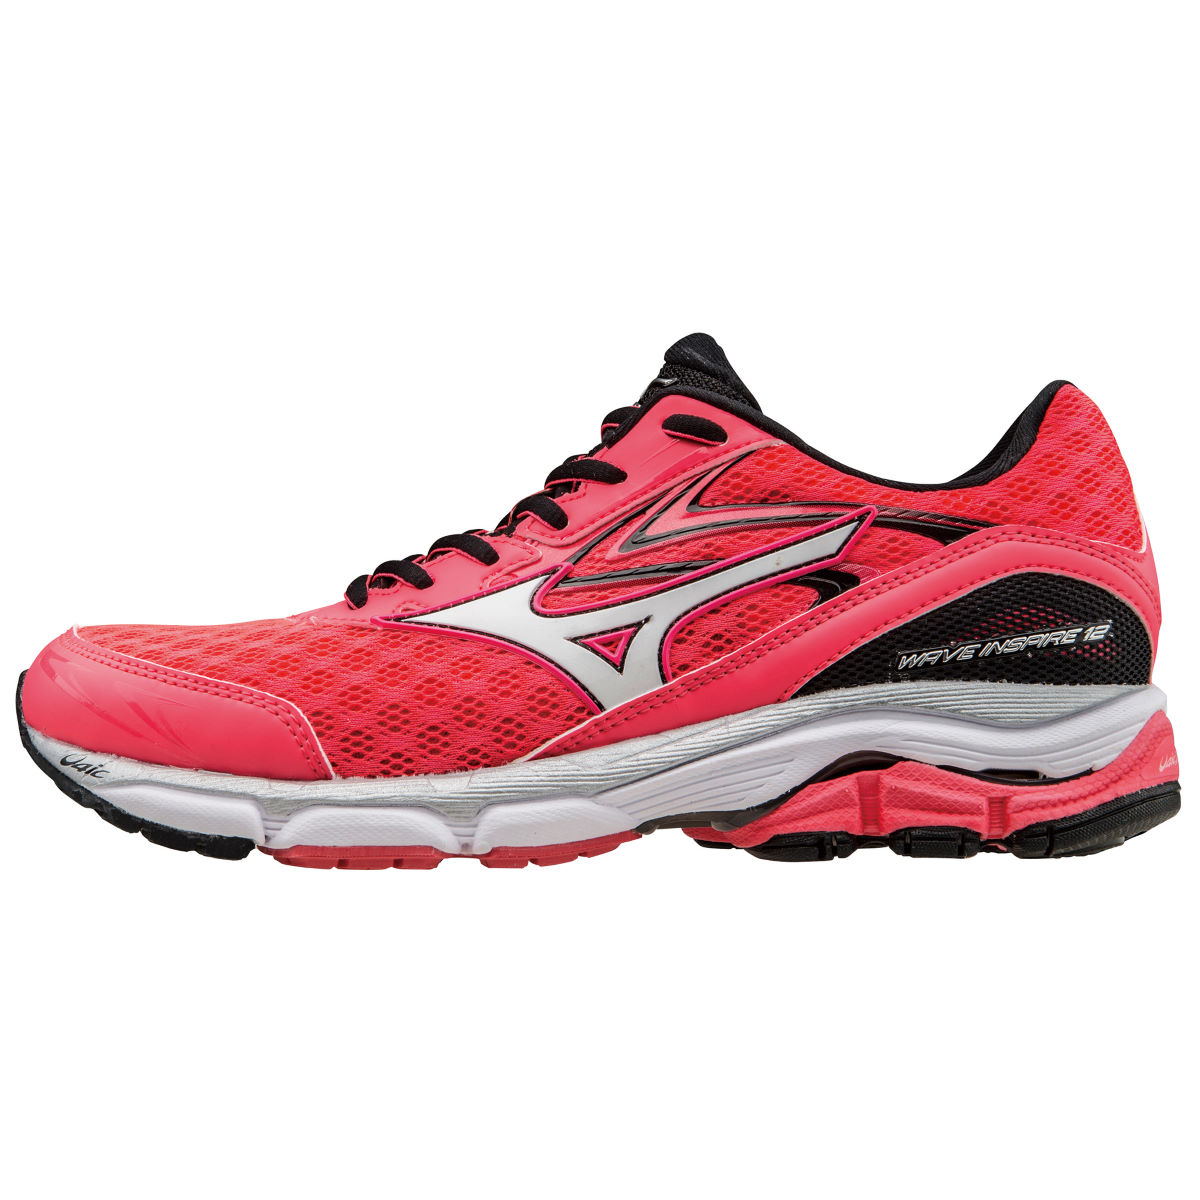 Mizuno Womens Wave Inspire 12 Shoes  (AW16)   Stability Running Shoes